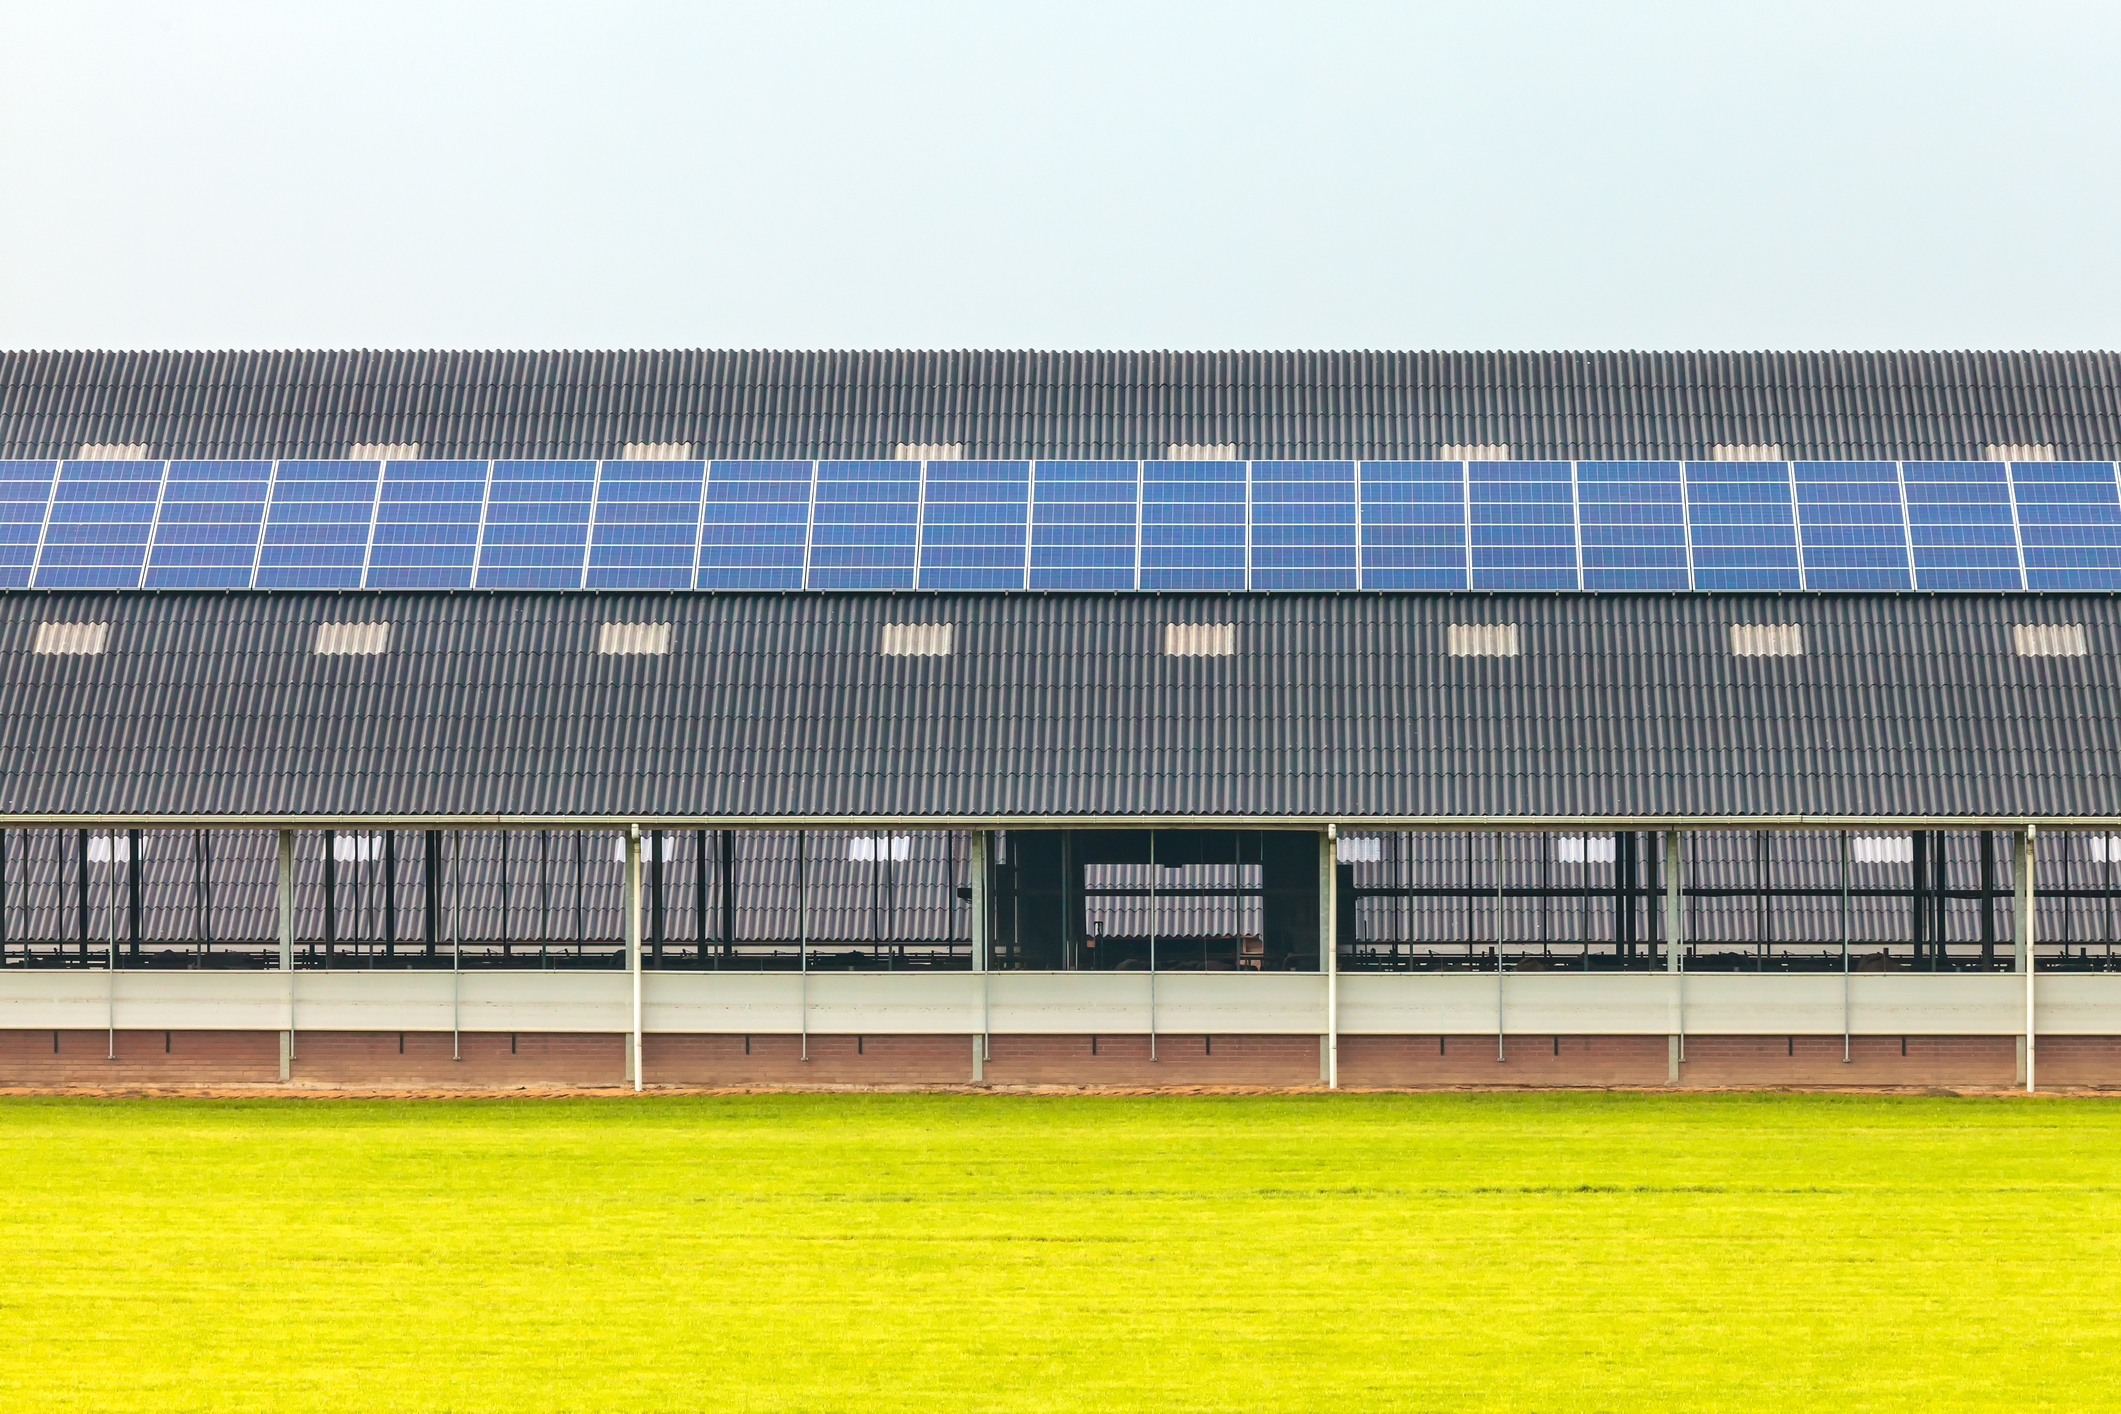 Solar panels on a new farm barn